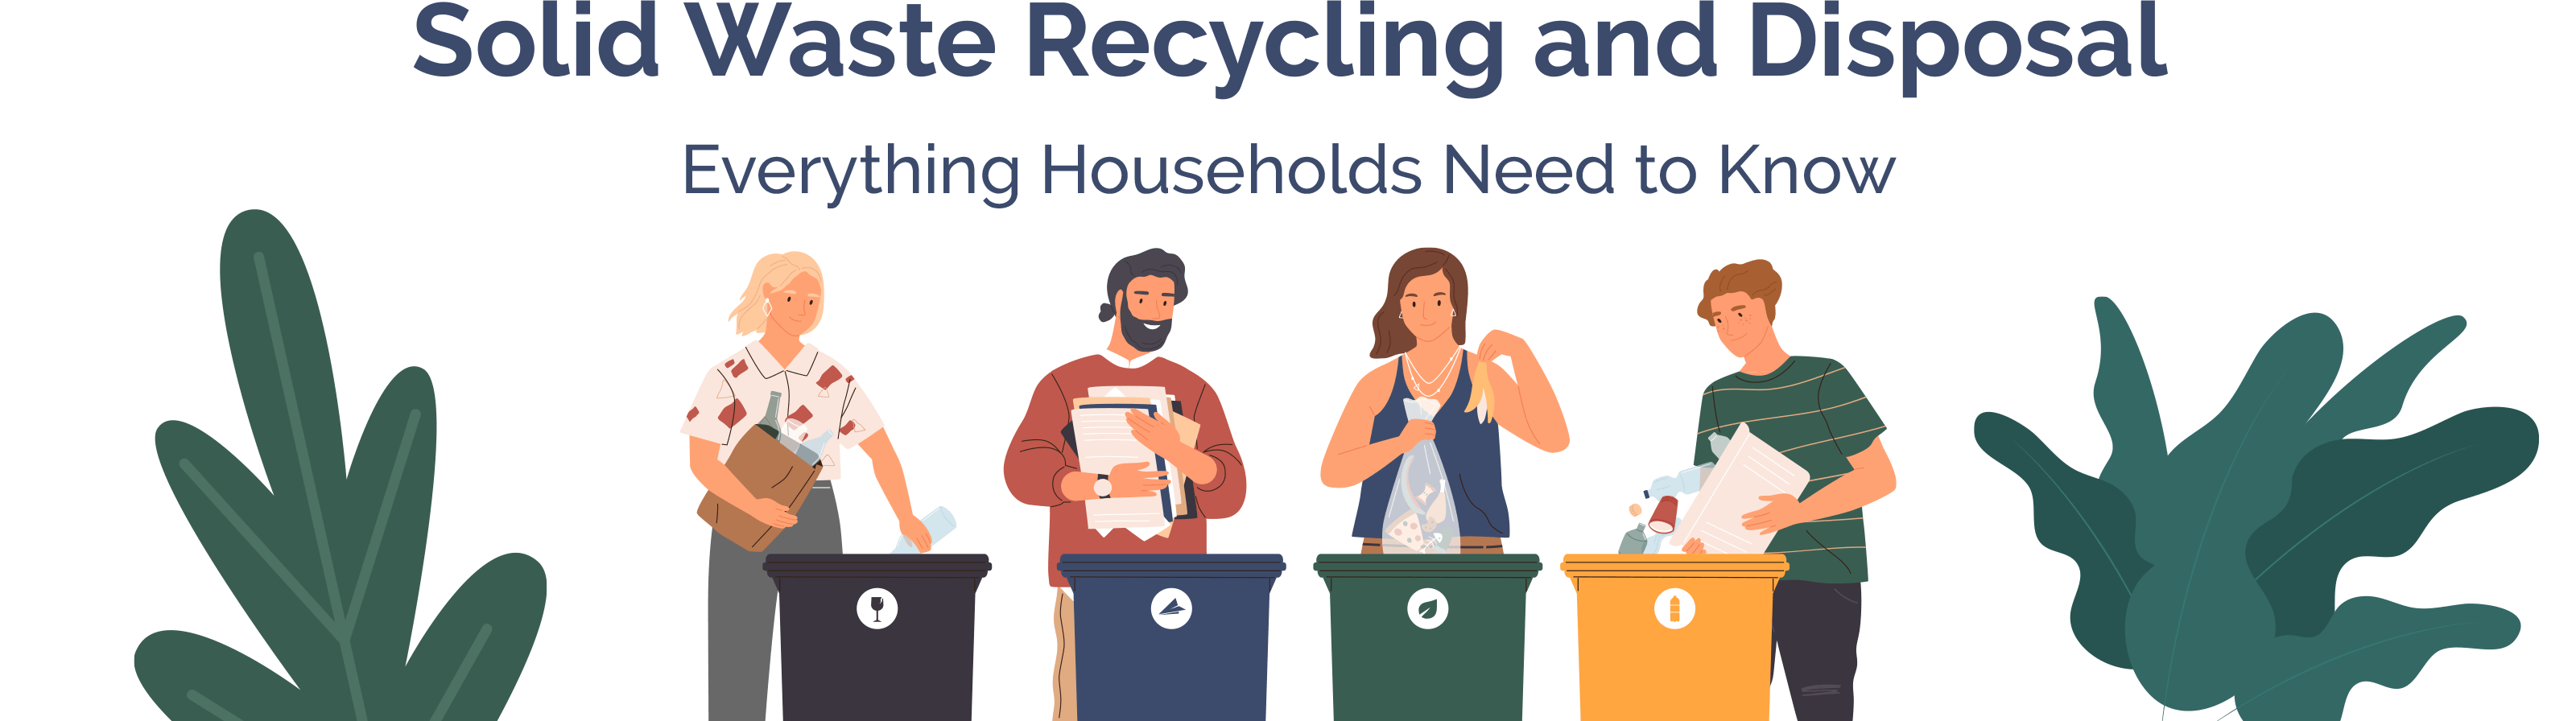 Everything Households Need to Know about Solid Waste Recycling and Disposal